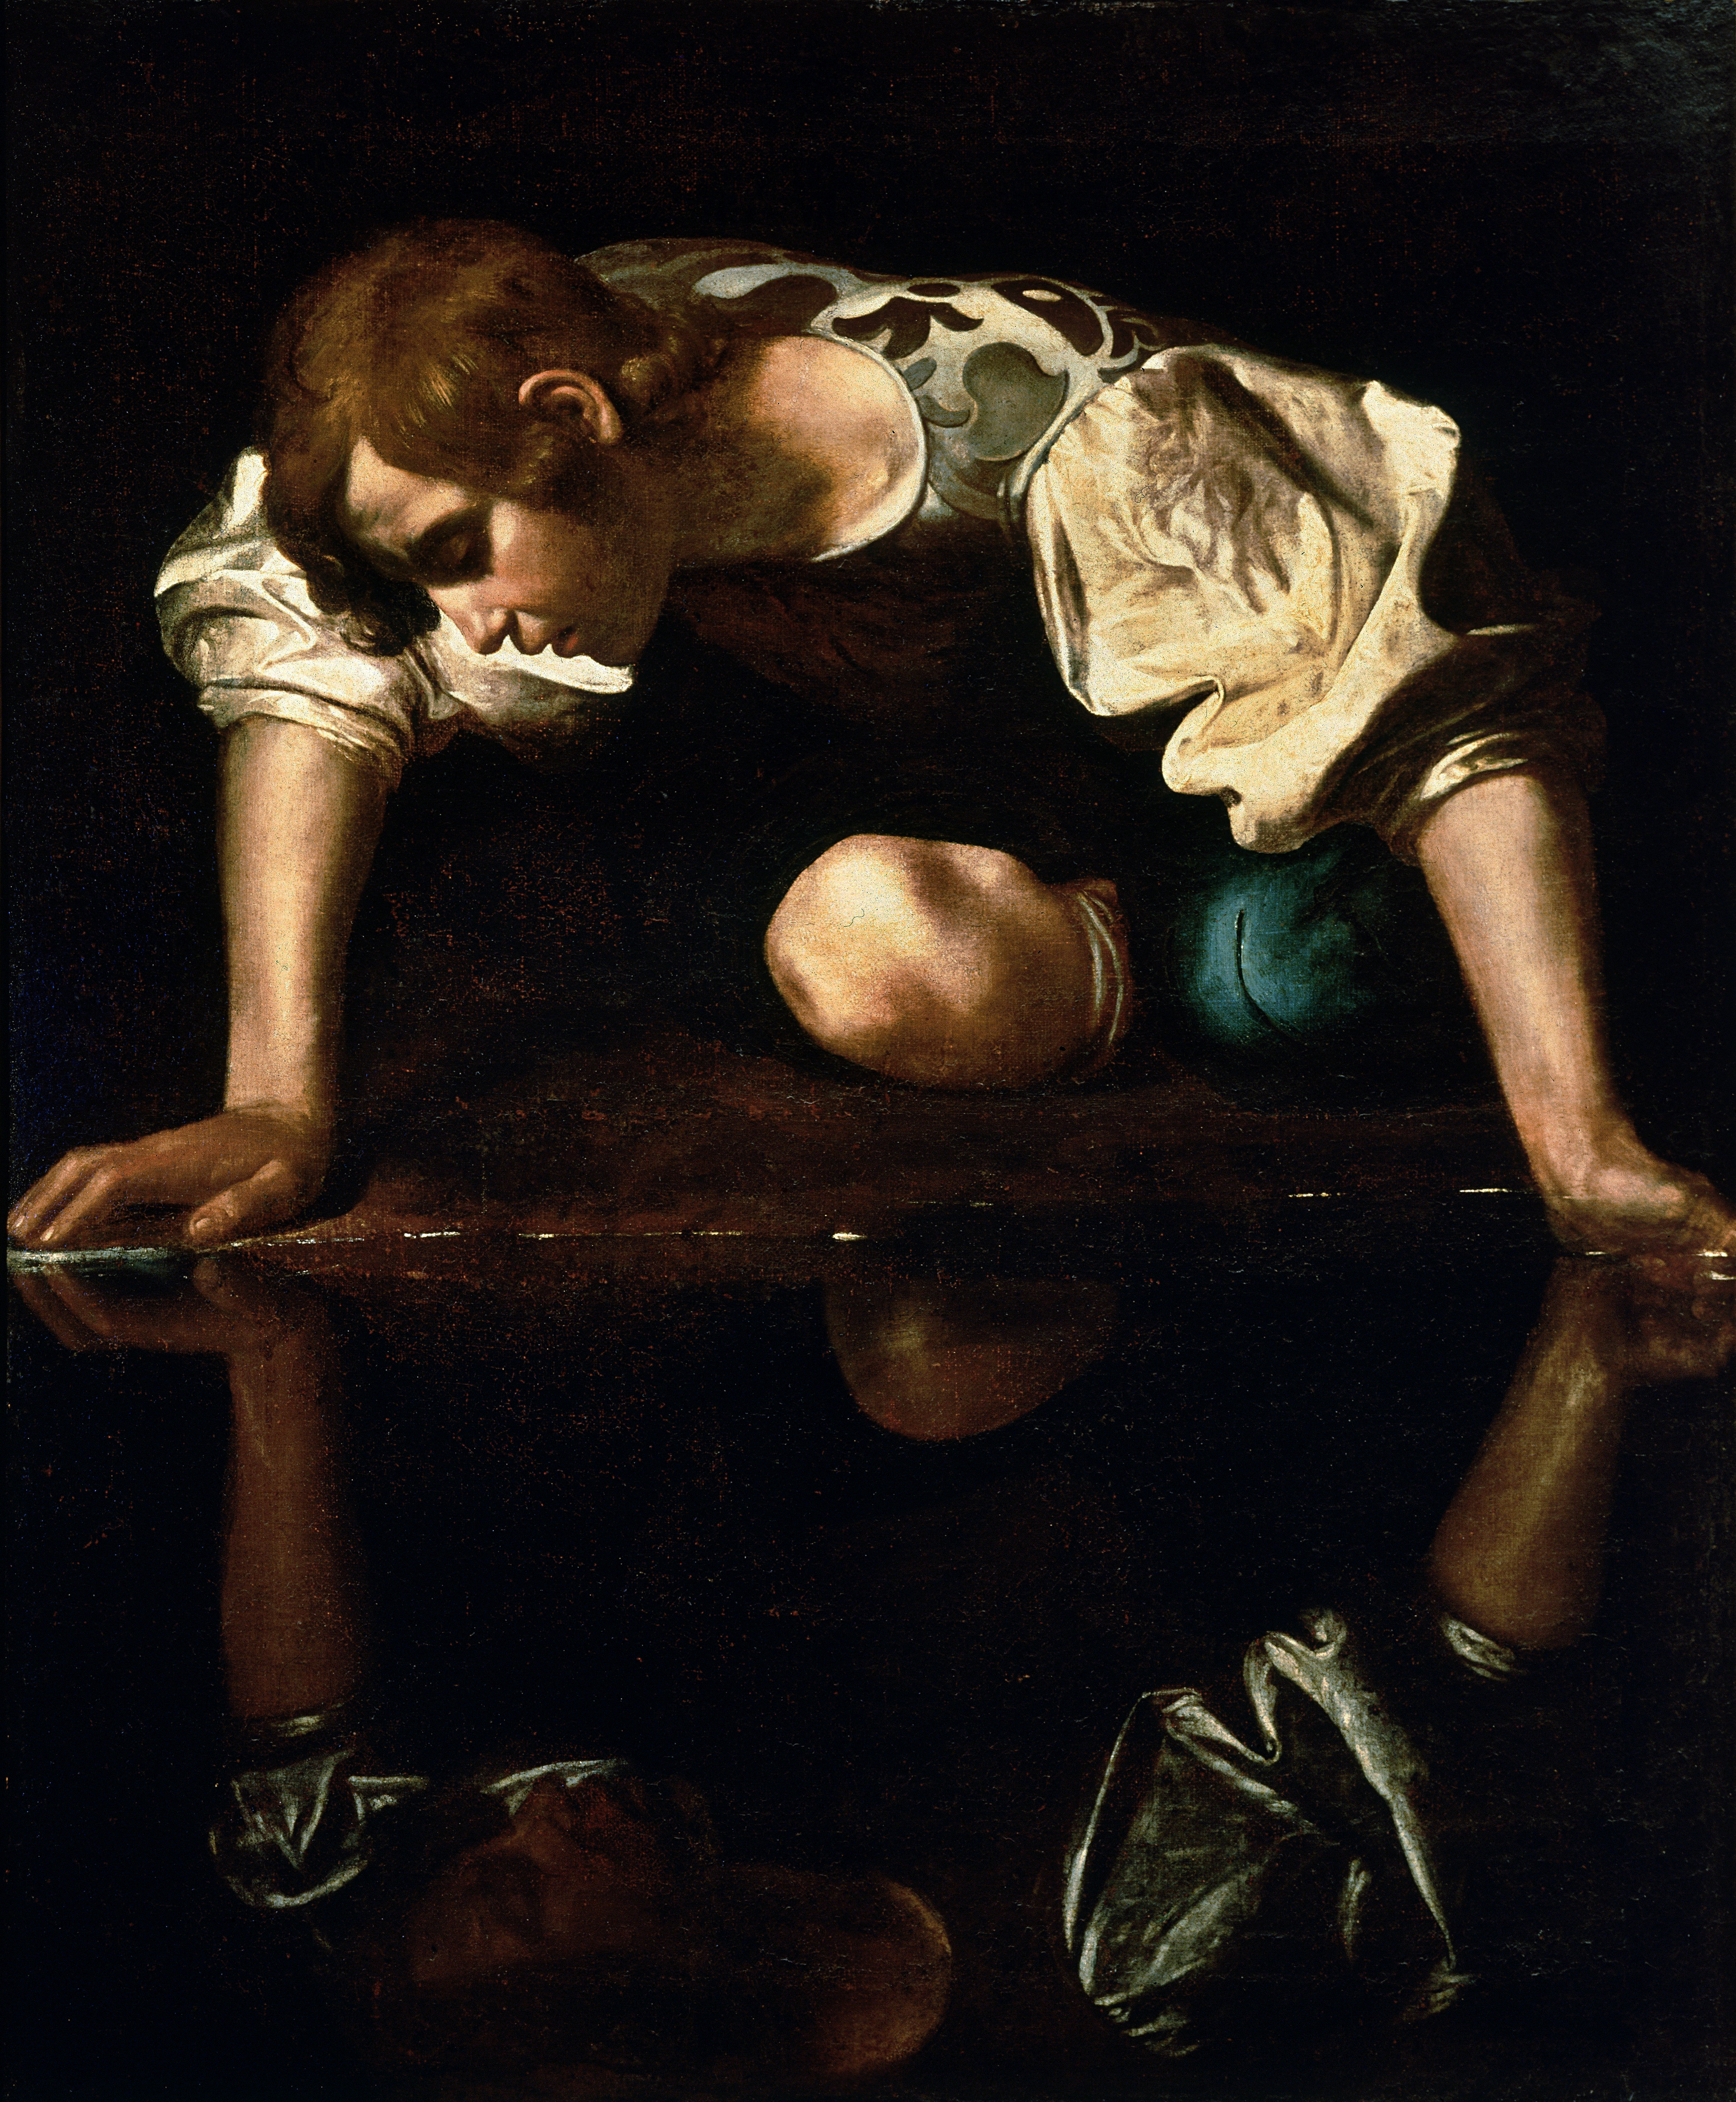 http://upload.wikimedia.org/wikipedia/commons/2/29/Narcissus-Caravaggio_(1594-96)_edited.jpg